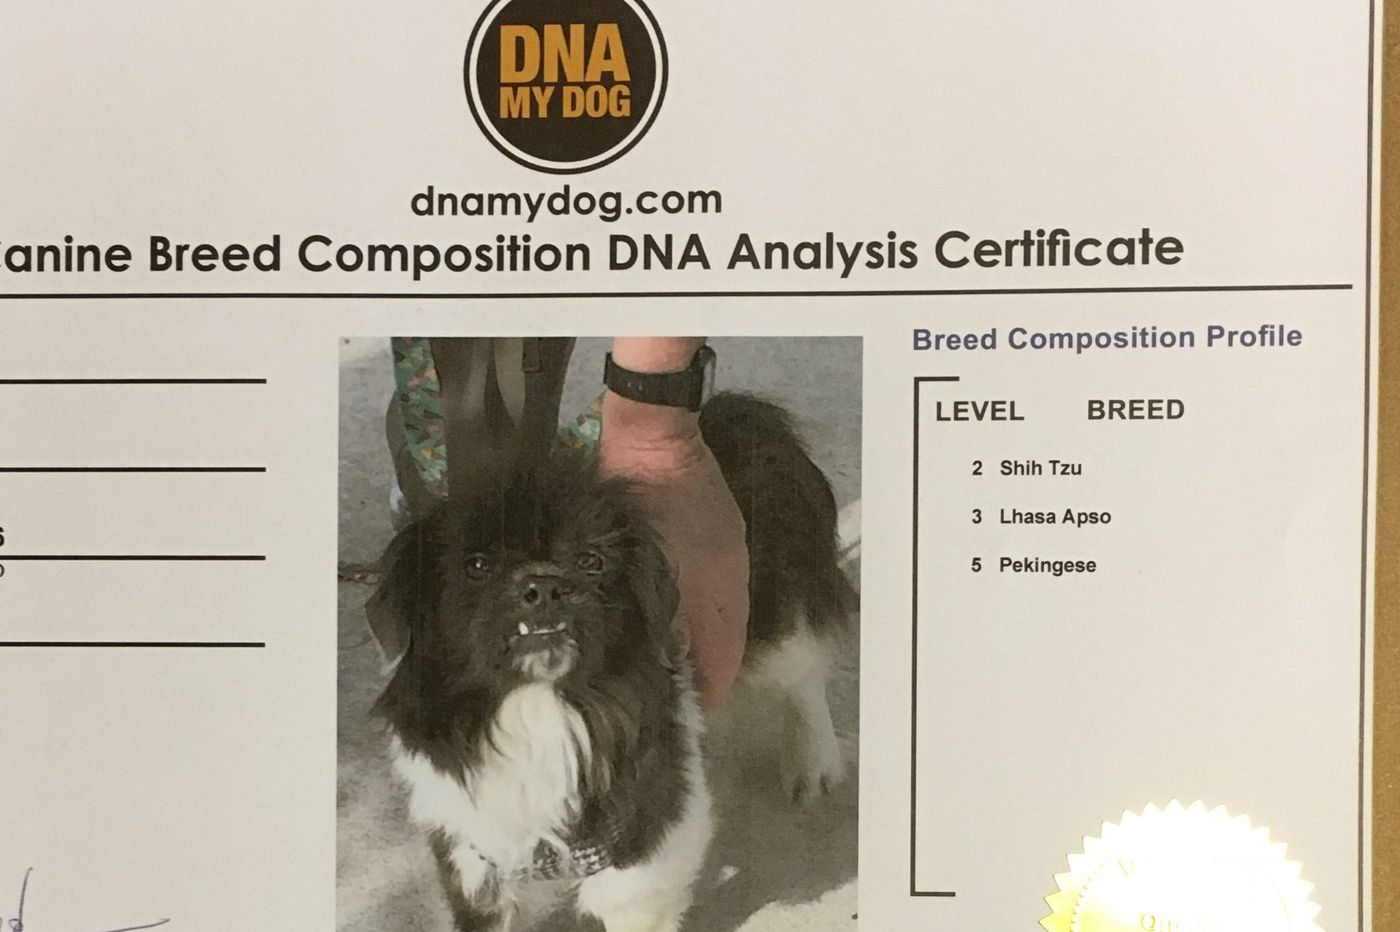 DNA testing for dogs? Think outside the bark | Stu Bykofsky